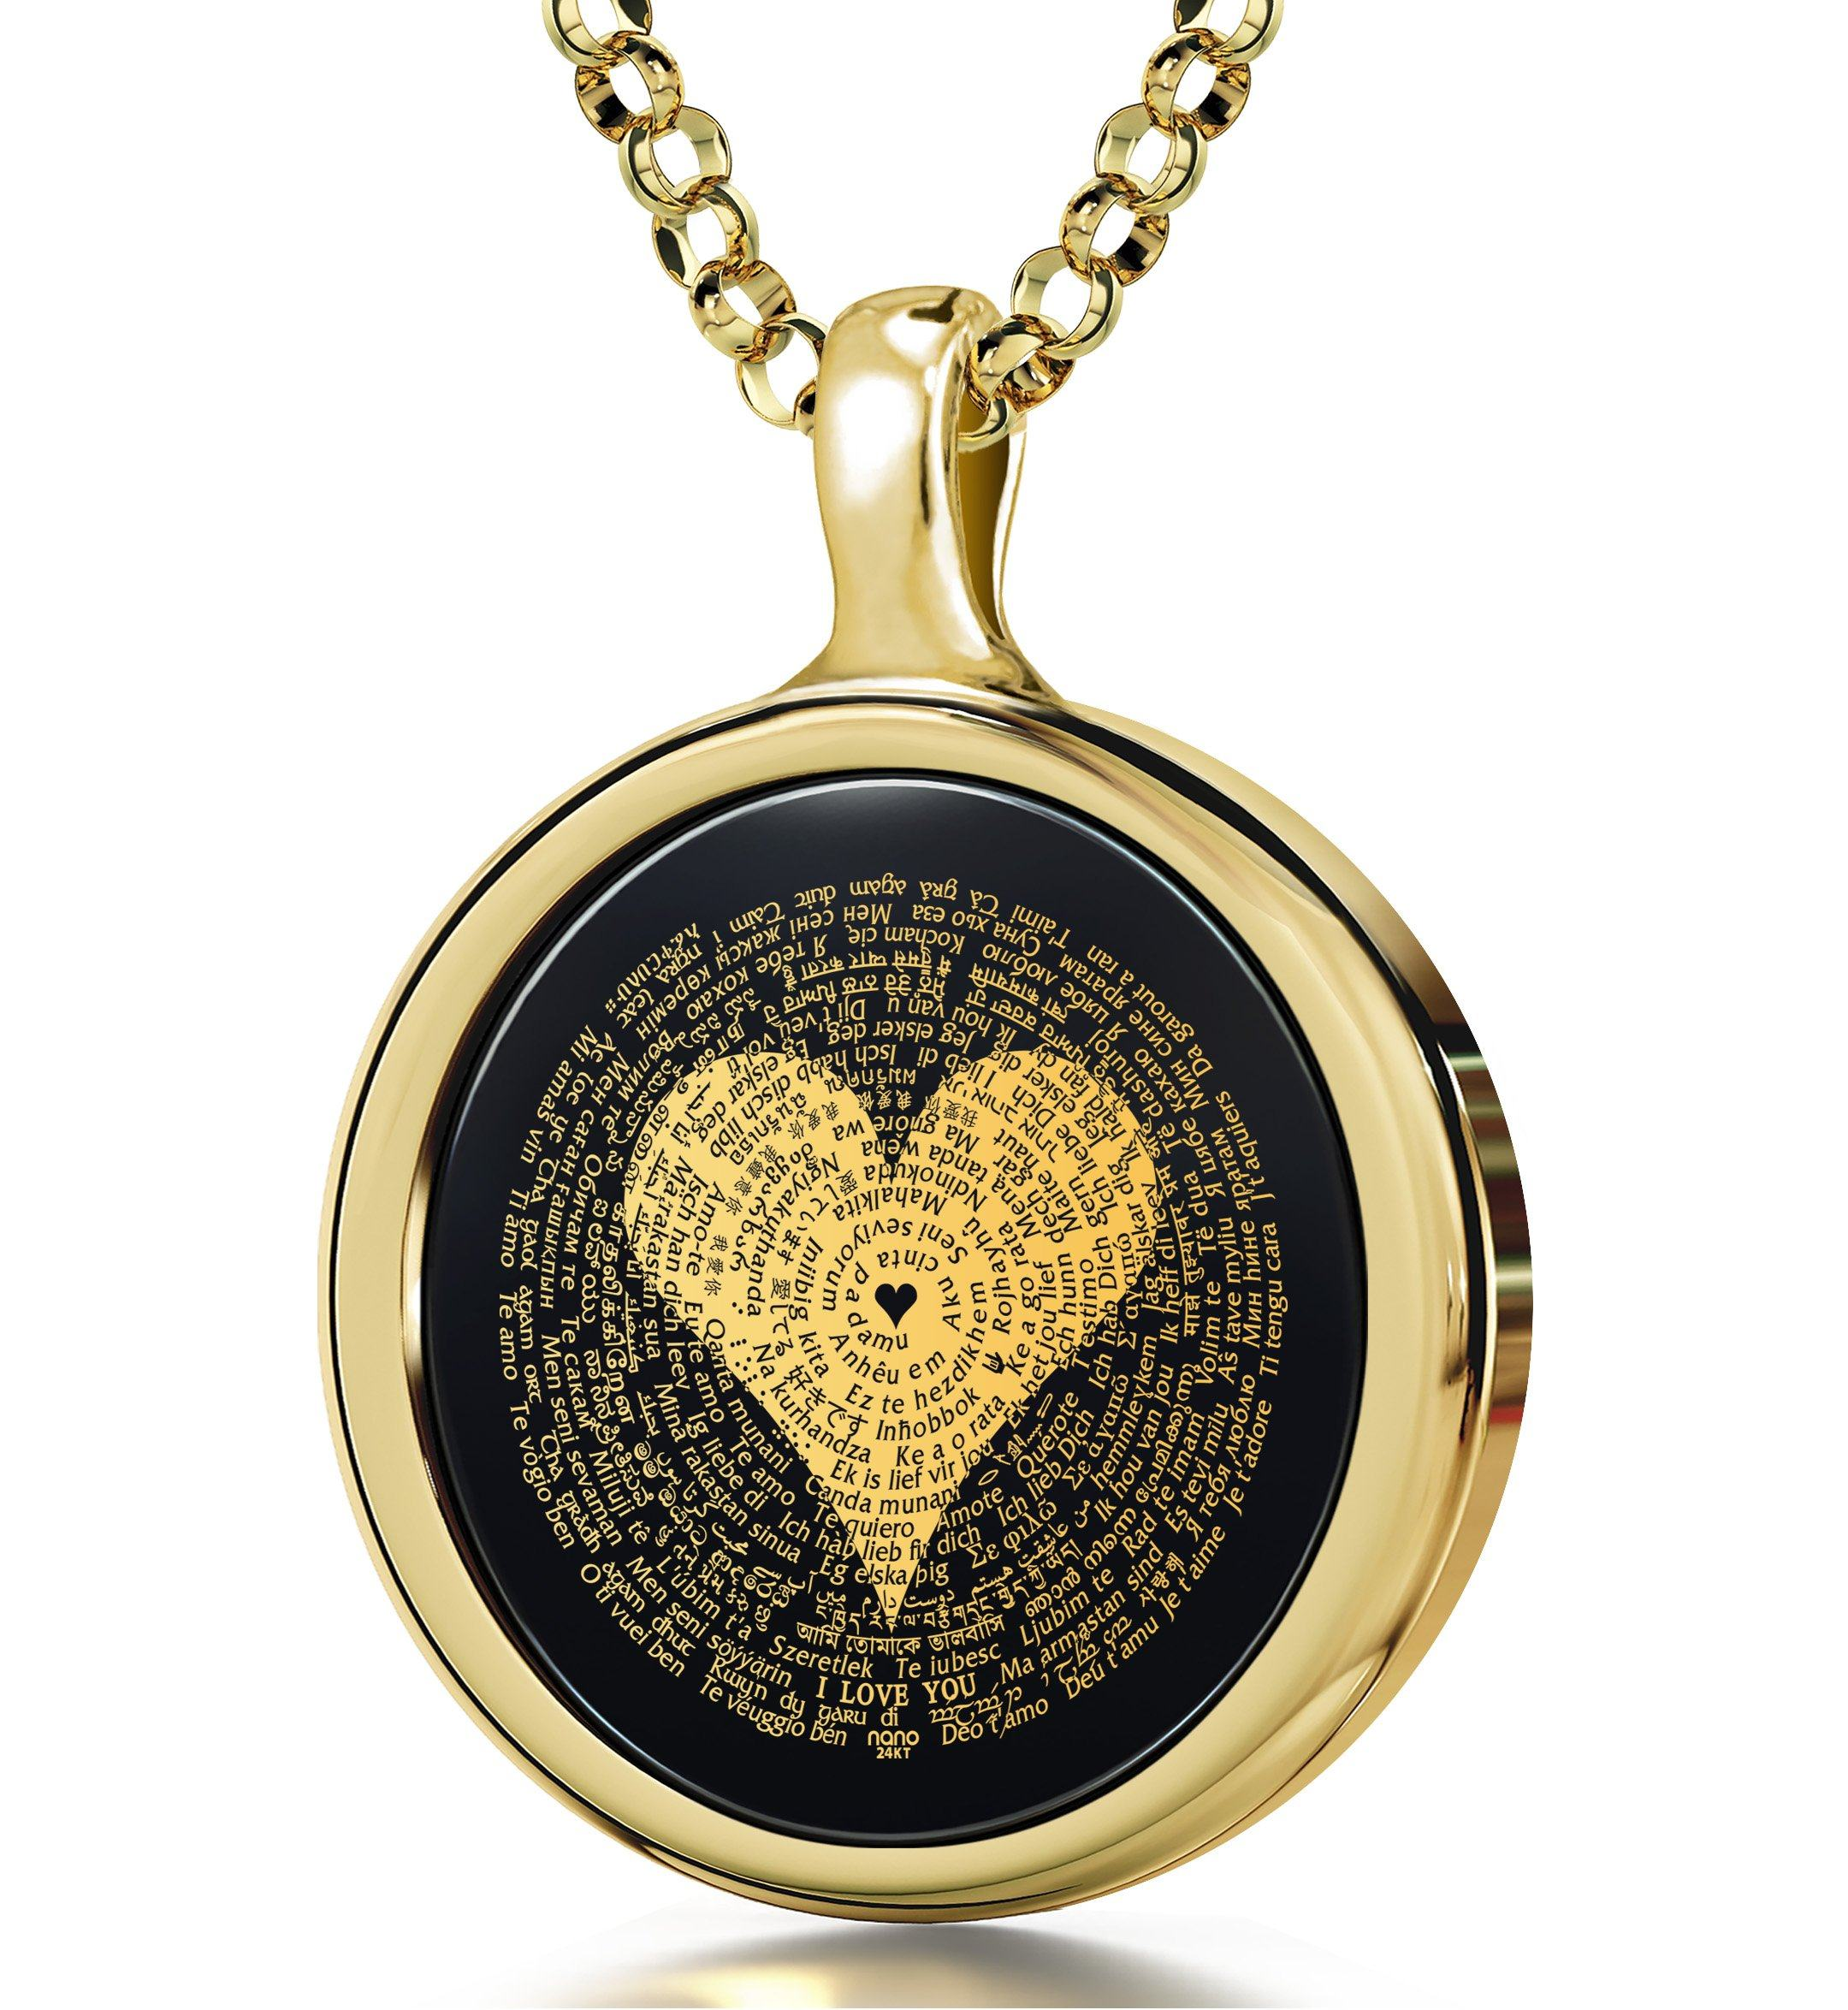 "$500 Gift Ideas for Her: ""I Love You"" in 120 Languages - Round Plain - 14K Gold - Nano Jewelry"